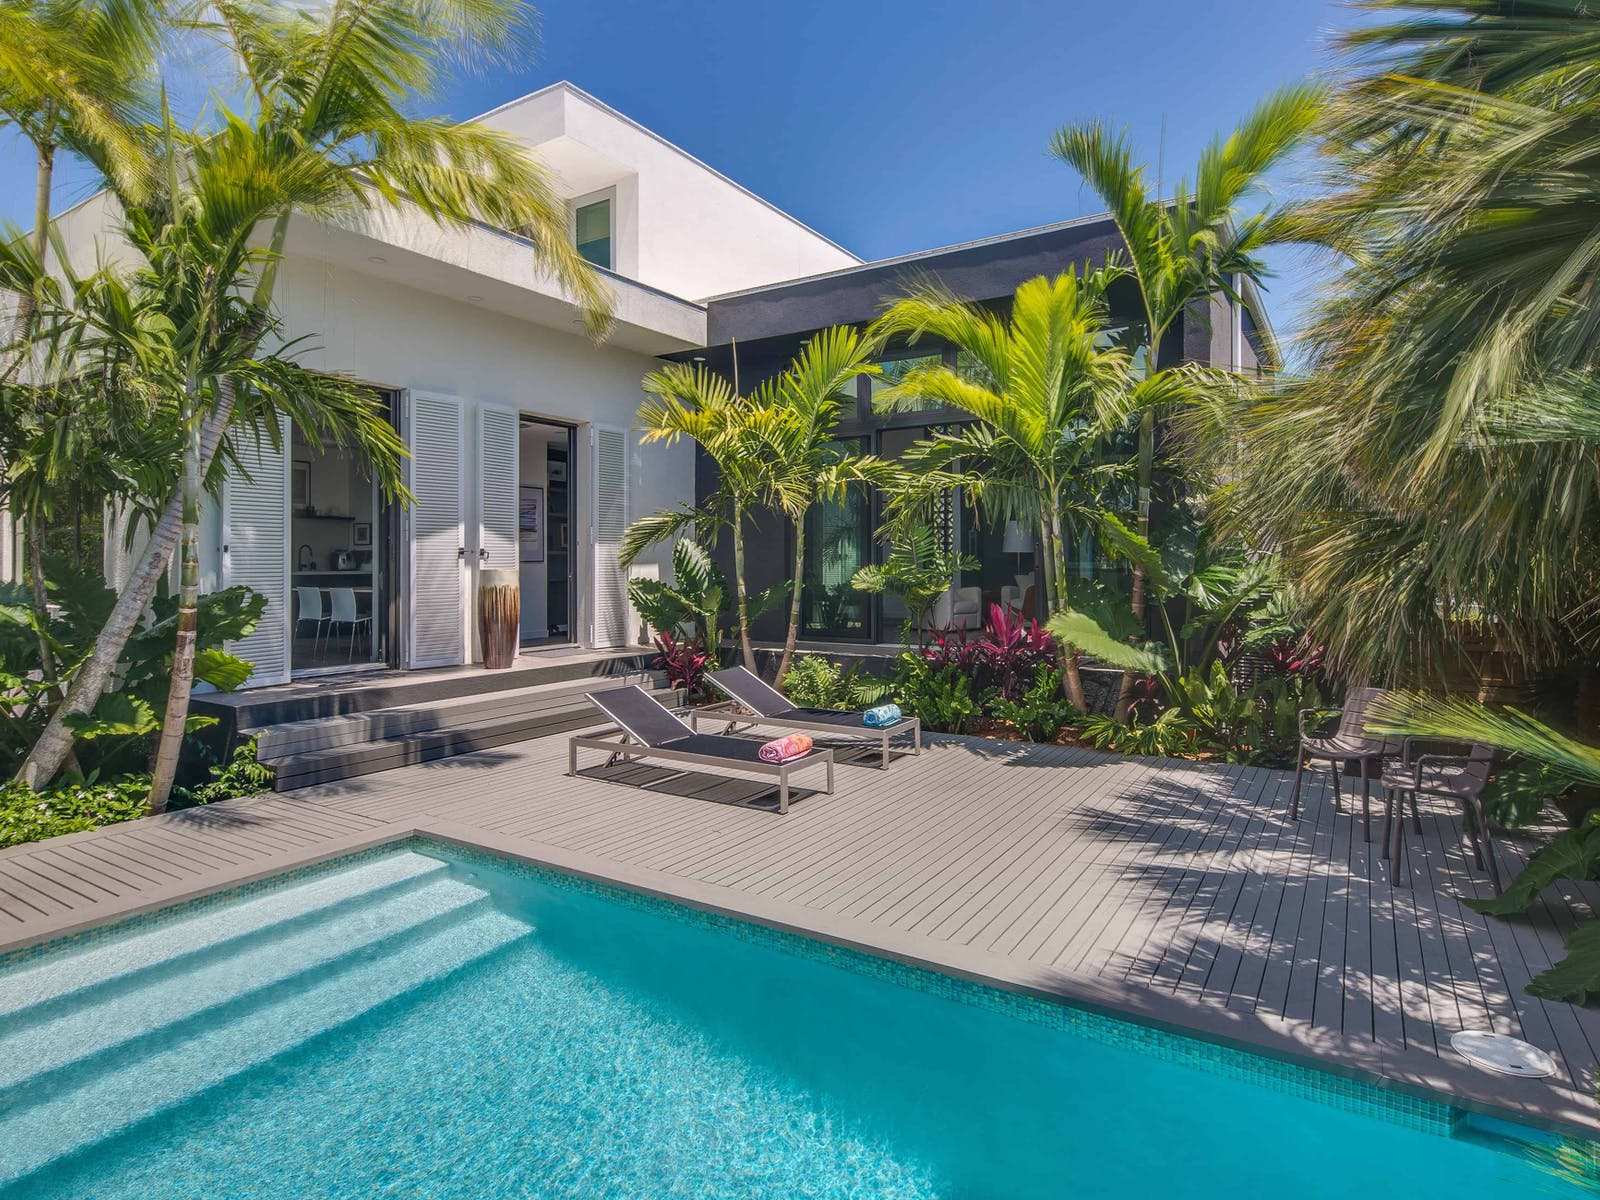 Vacation rental with outdoor patio and private pool in Key West, FL